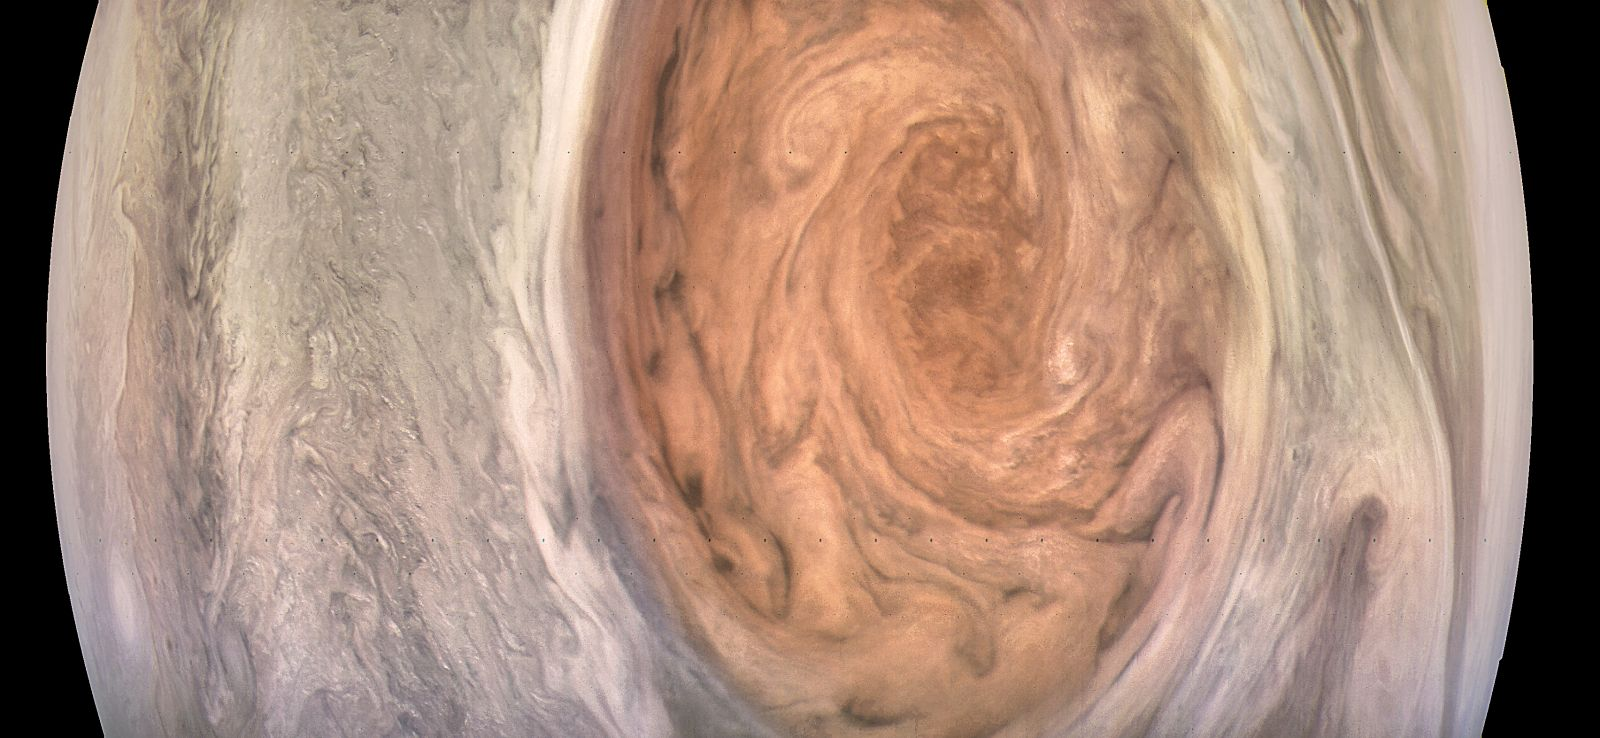 Jupiter's Great Red Spot as seen by NASA's Juno spacecraft Photo Credit NASA